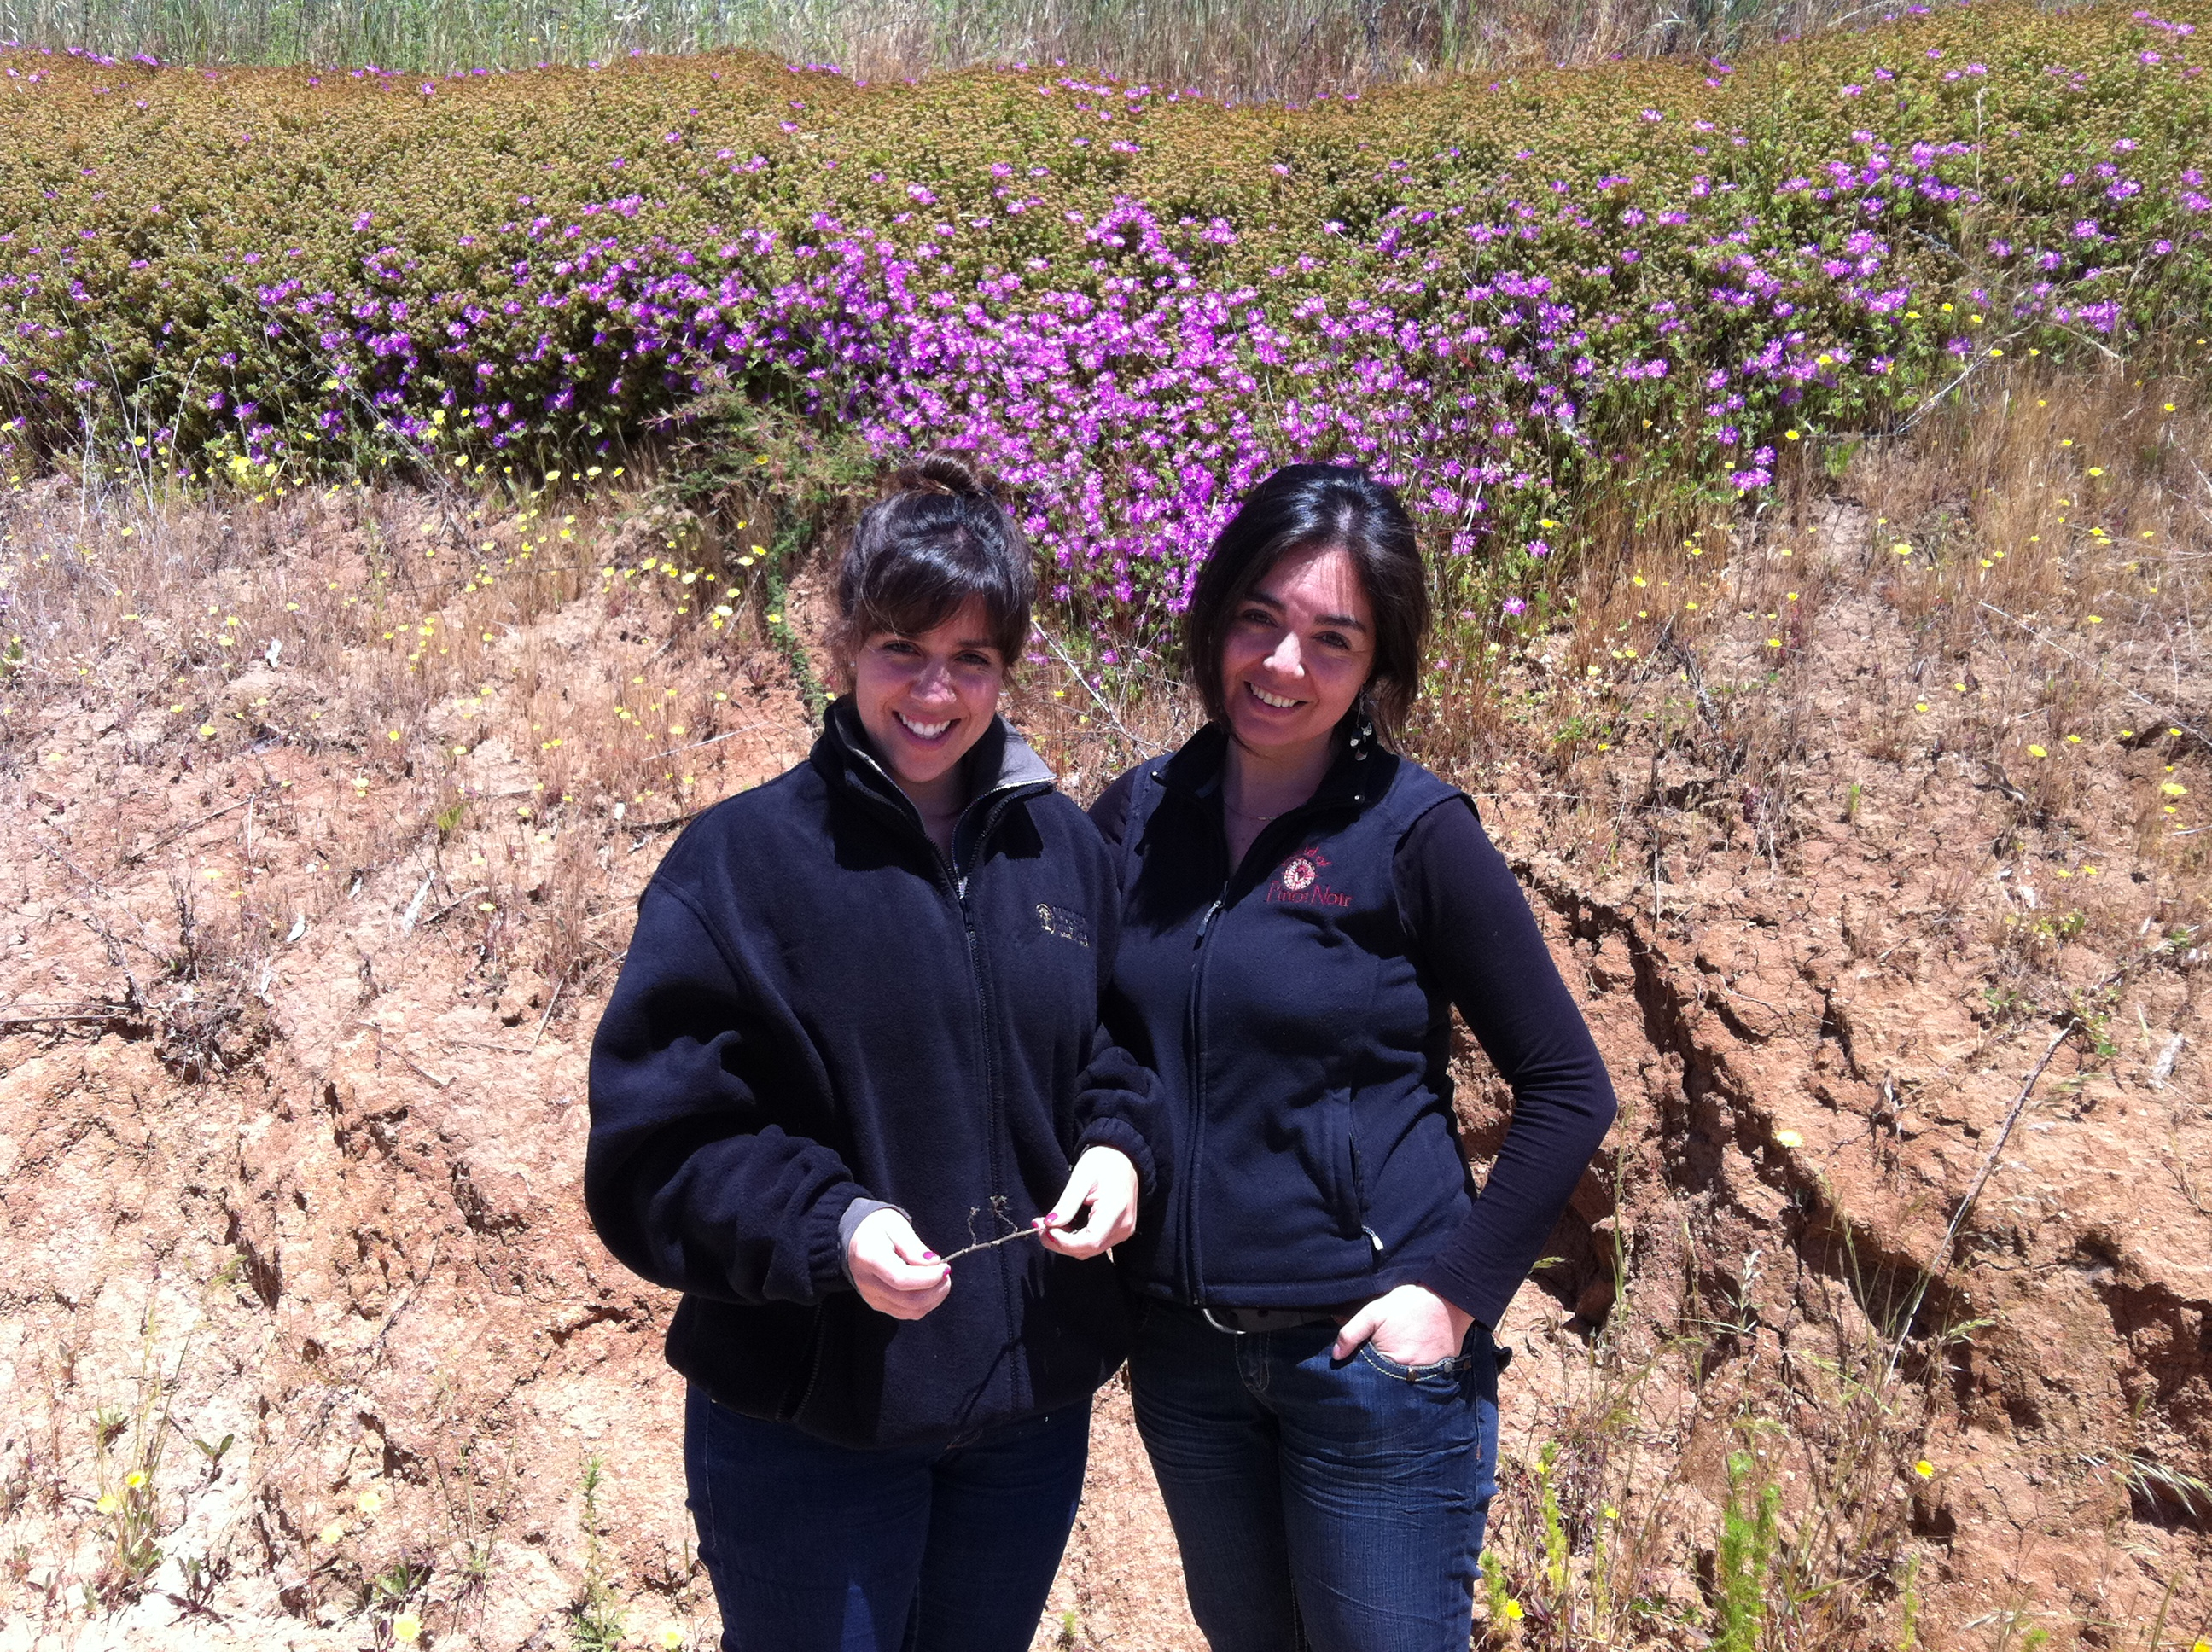 Our winemakers, Alejandra and Evelyn